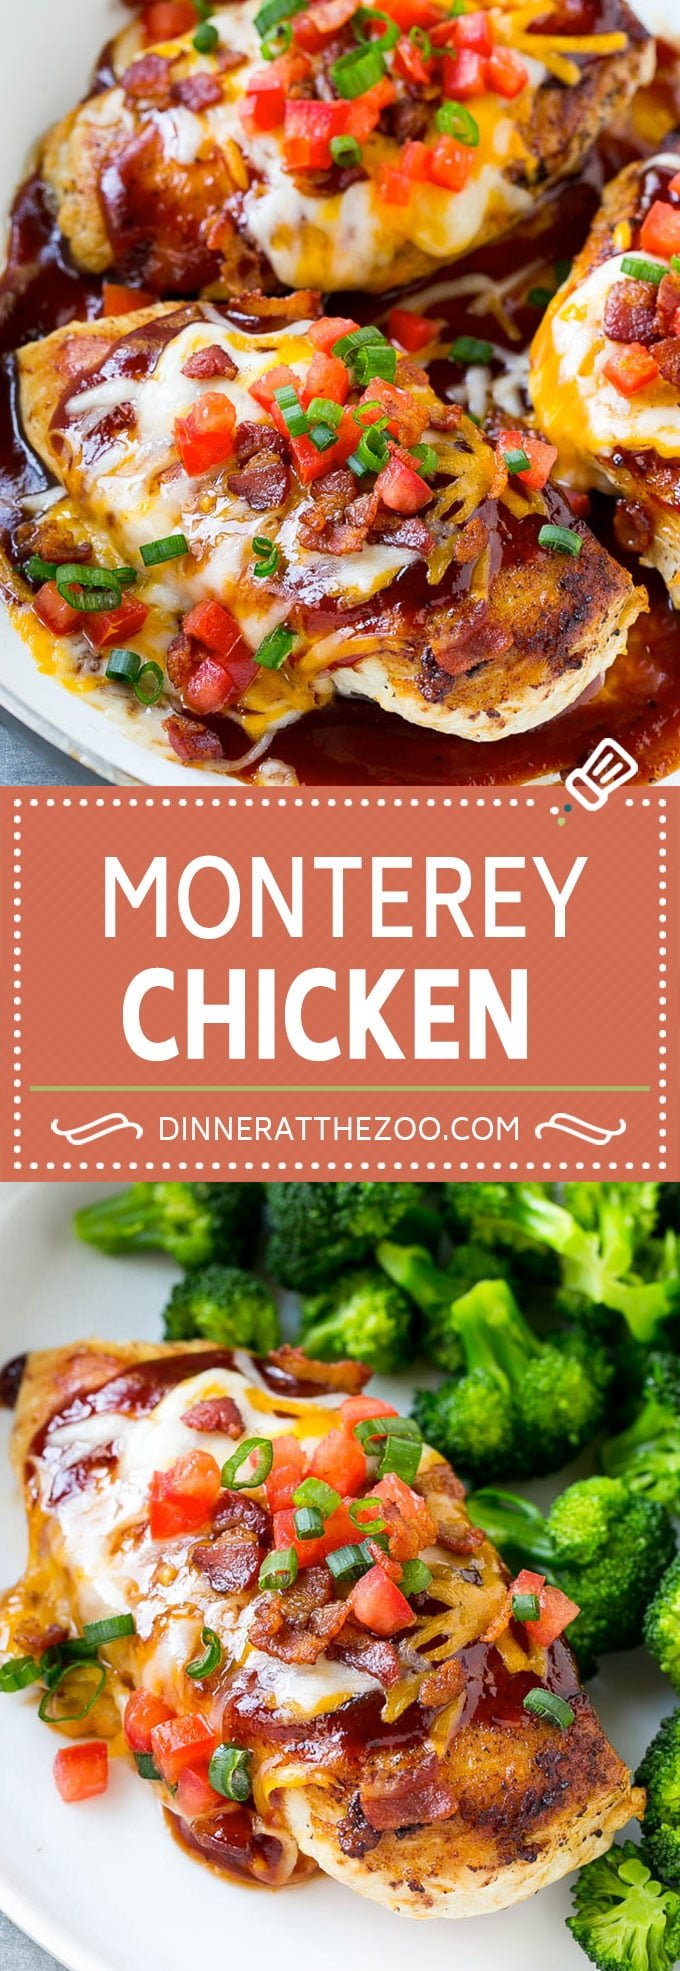 Monterey Chicken Recipe | Chili's Copycat Monterey Chicken | Barbecue Chicken Recipe | Easy Chicken Recipe #chicken #bacon #bbq #cheese #dinner #dinneratthezoo